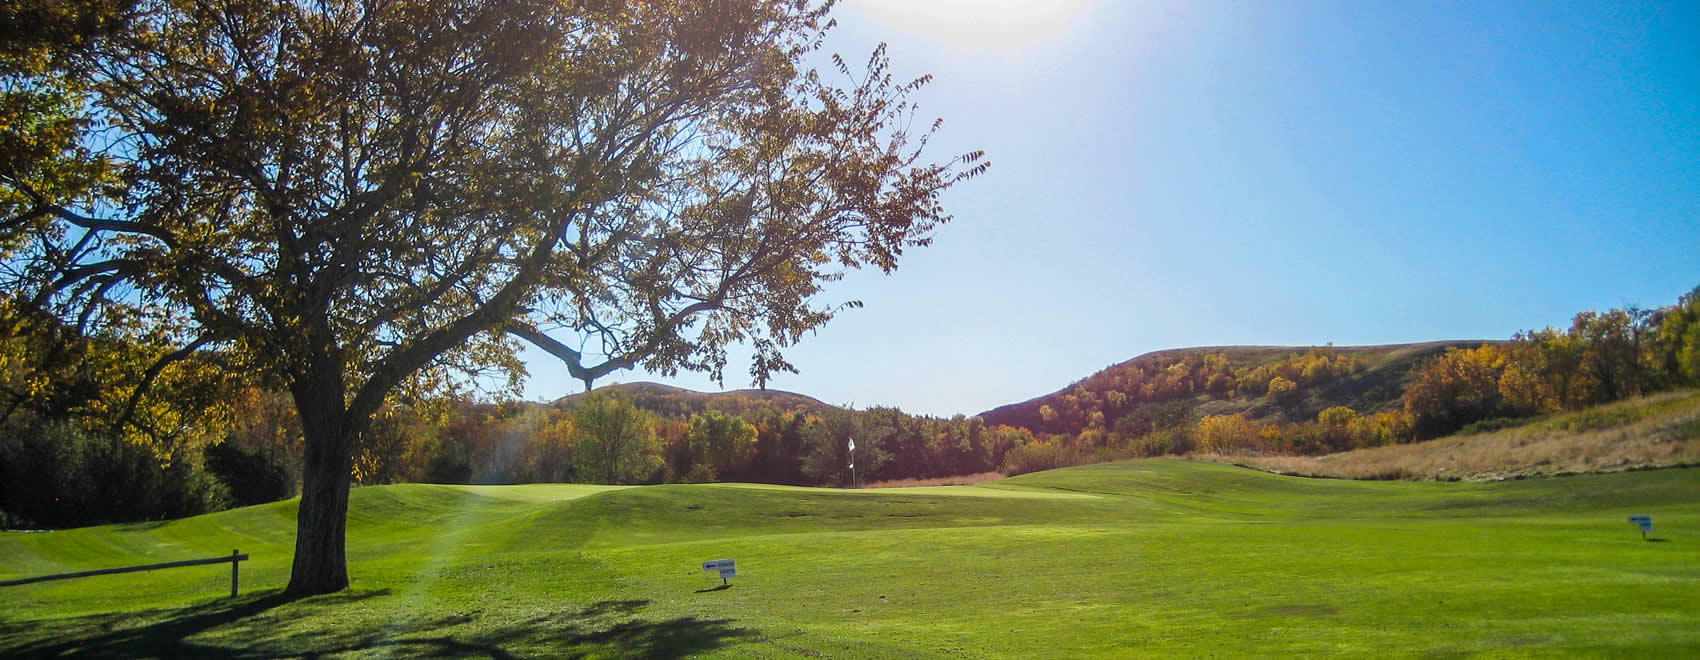 Willow Bunch Golf Course